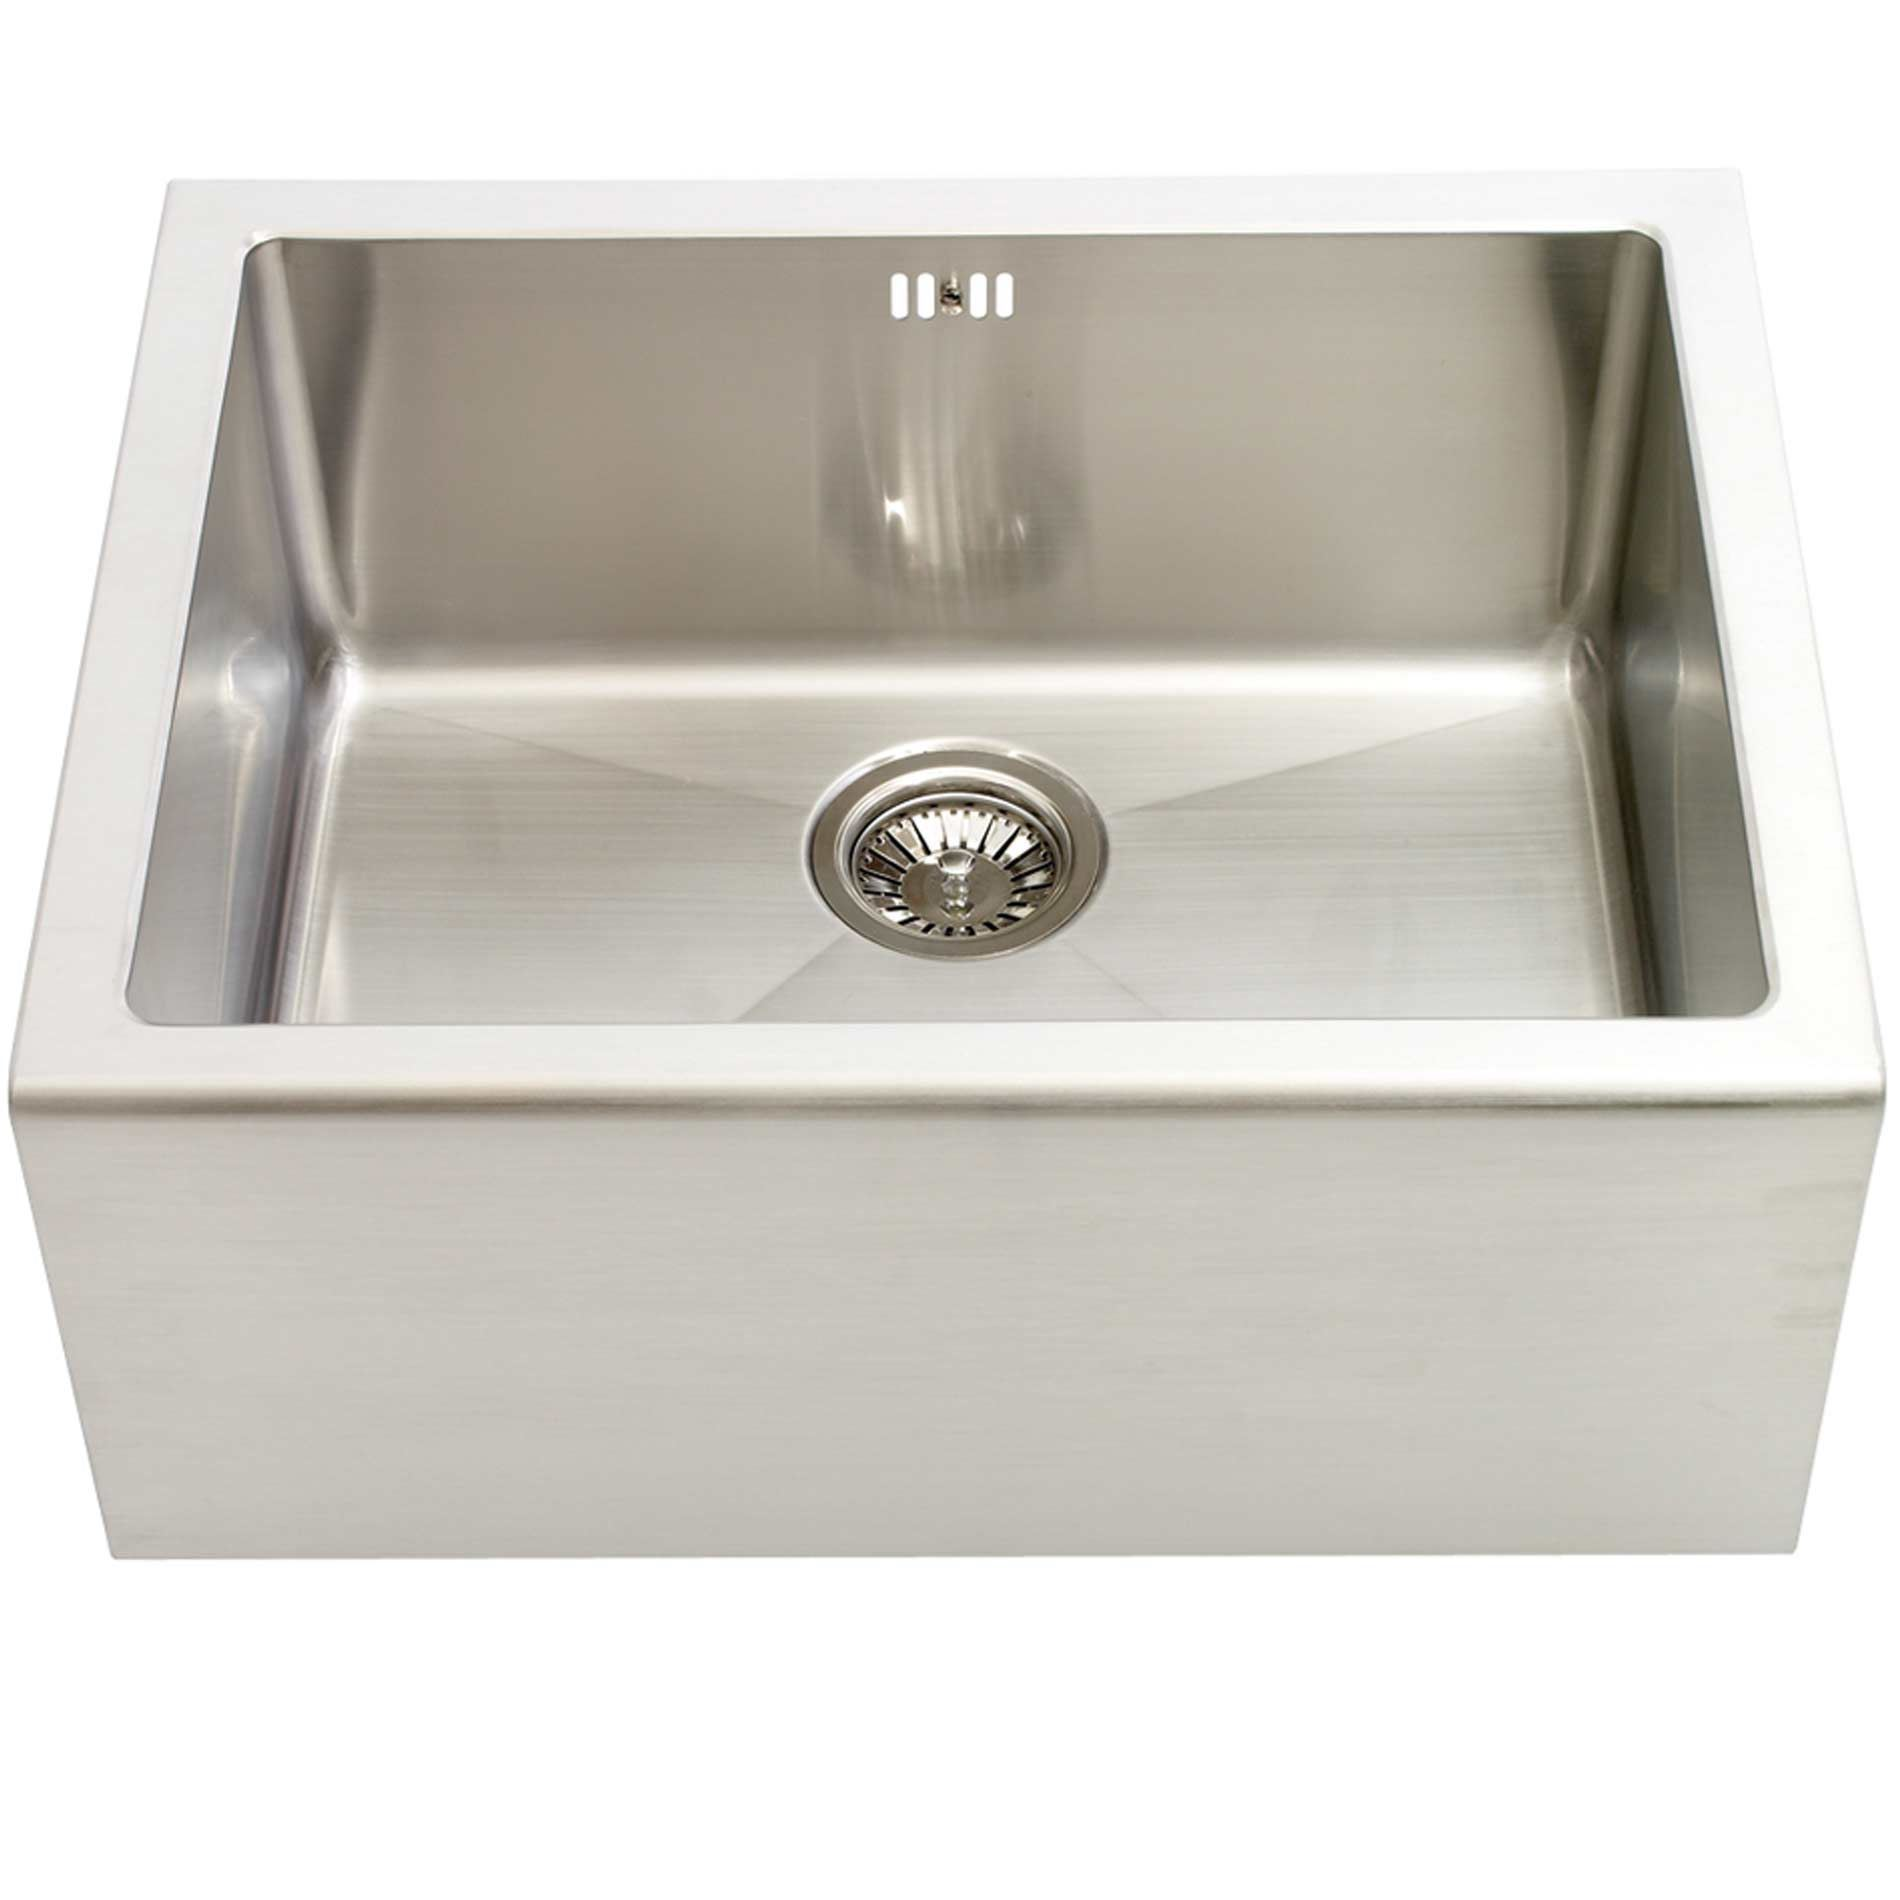 Astracast Stainless Steel Belfast Sink Feature Pack